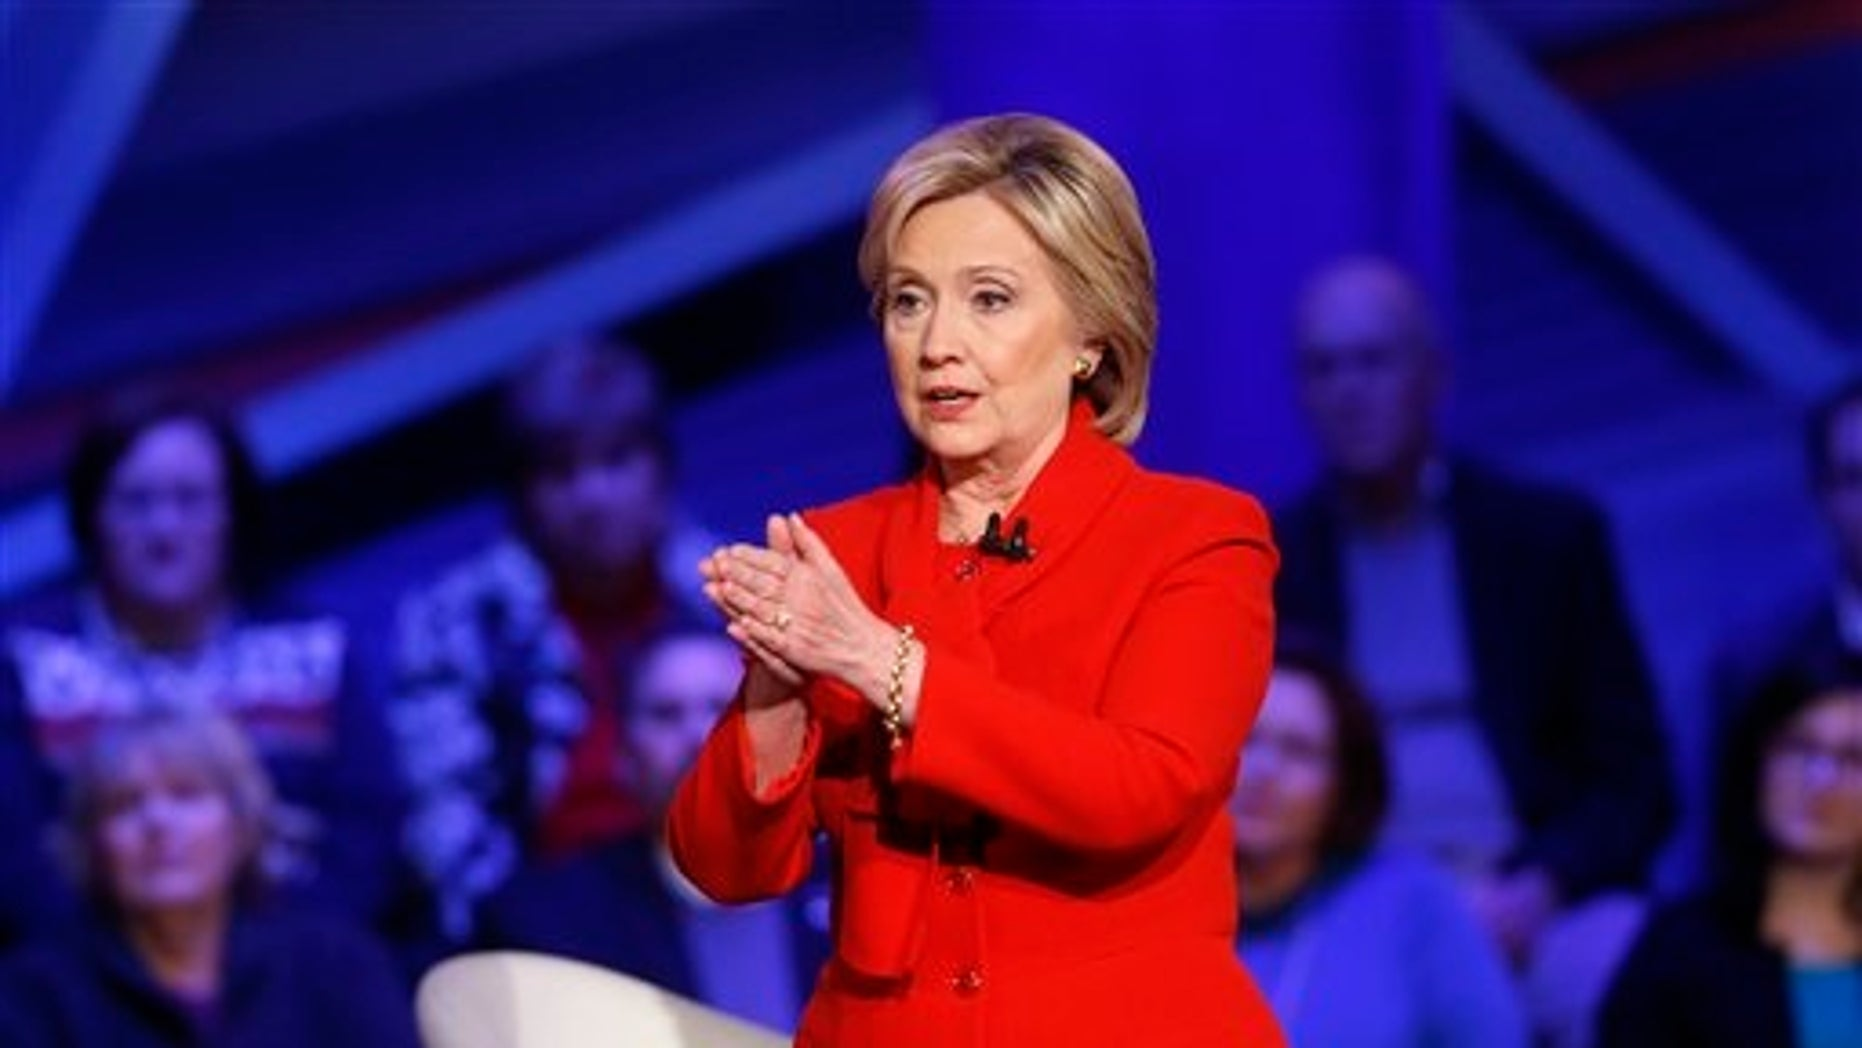 Democratic presidential candidate Hillary Clinton speaks during a CNN town hall at Drake University.